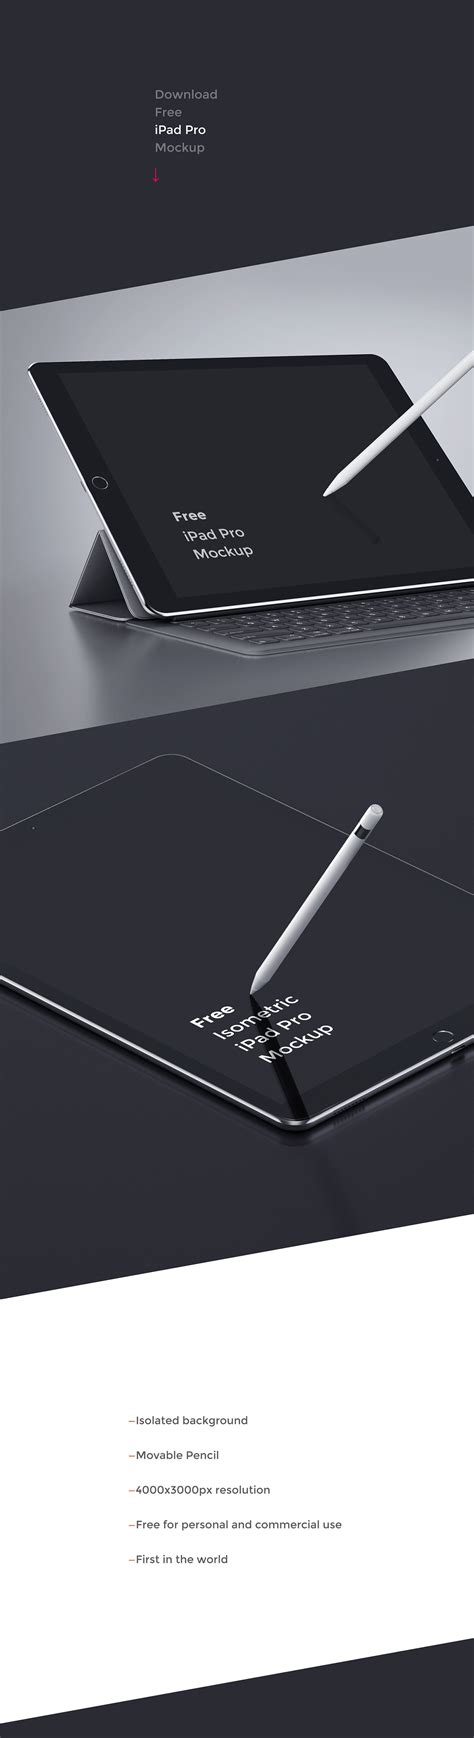 ipad pro  mockup  isolated background